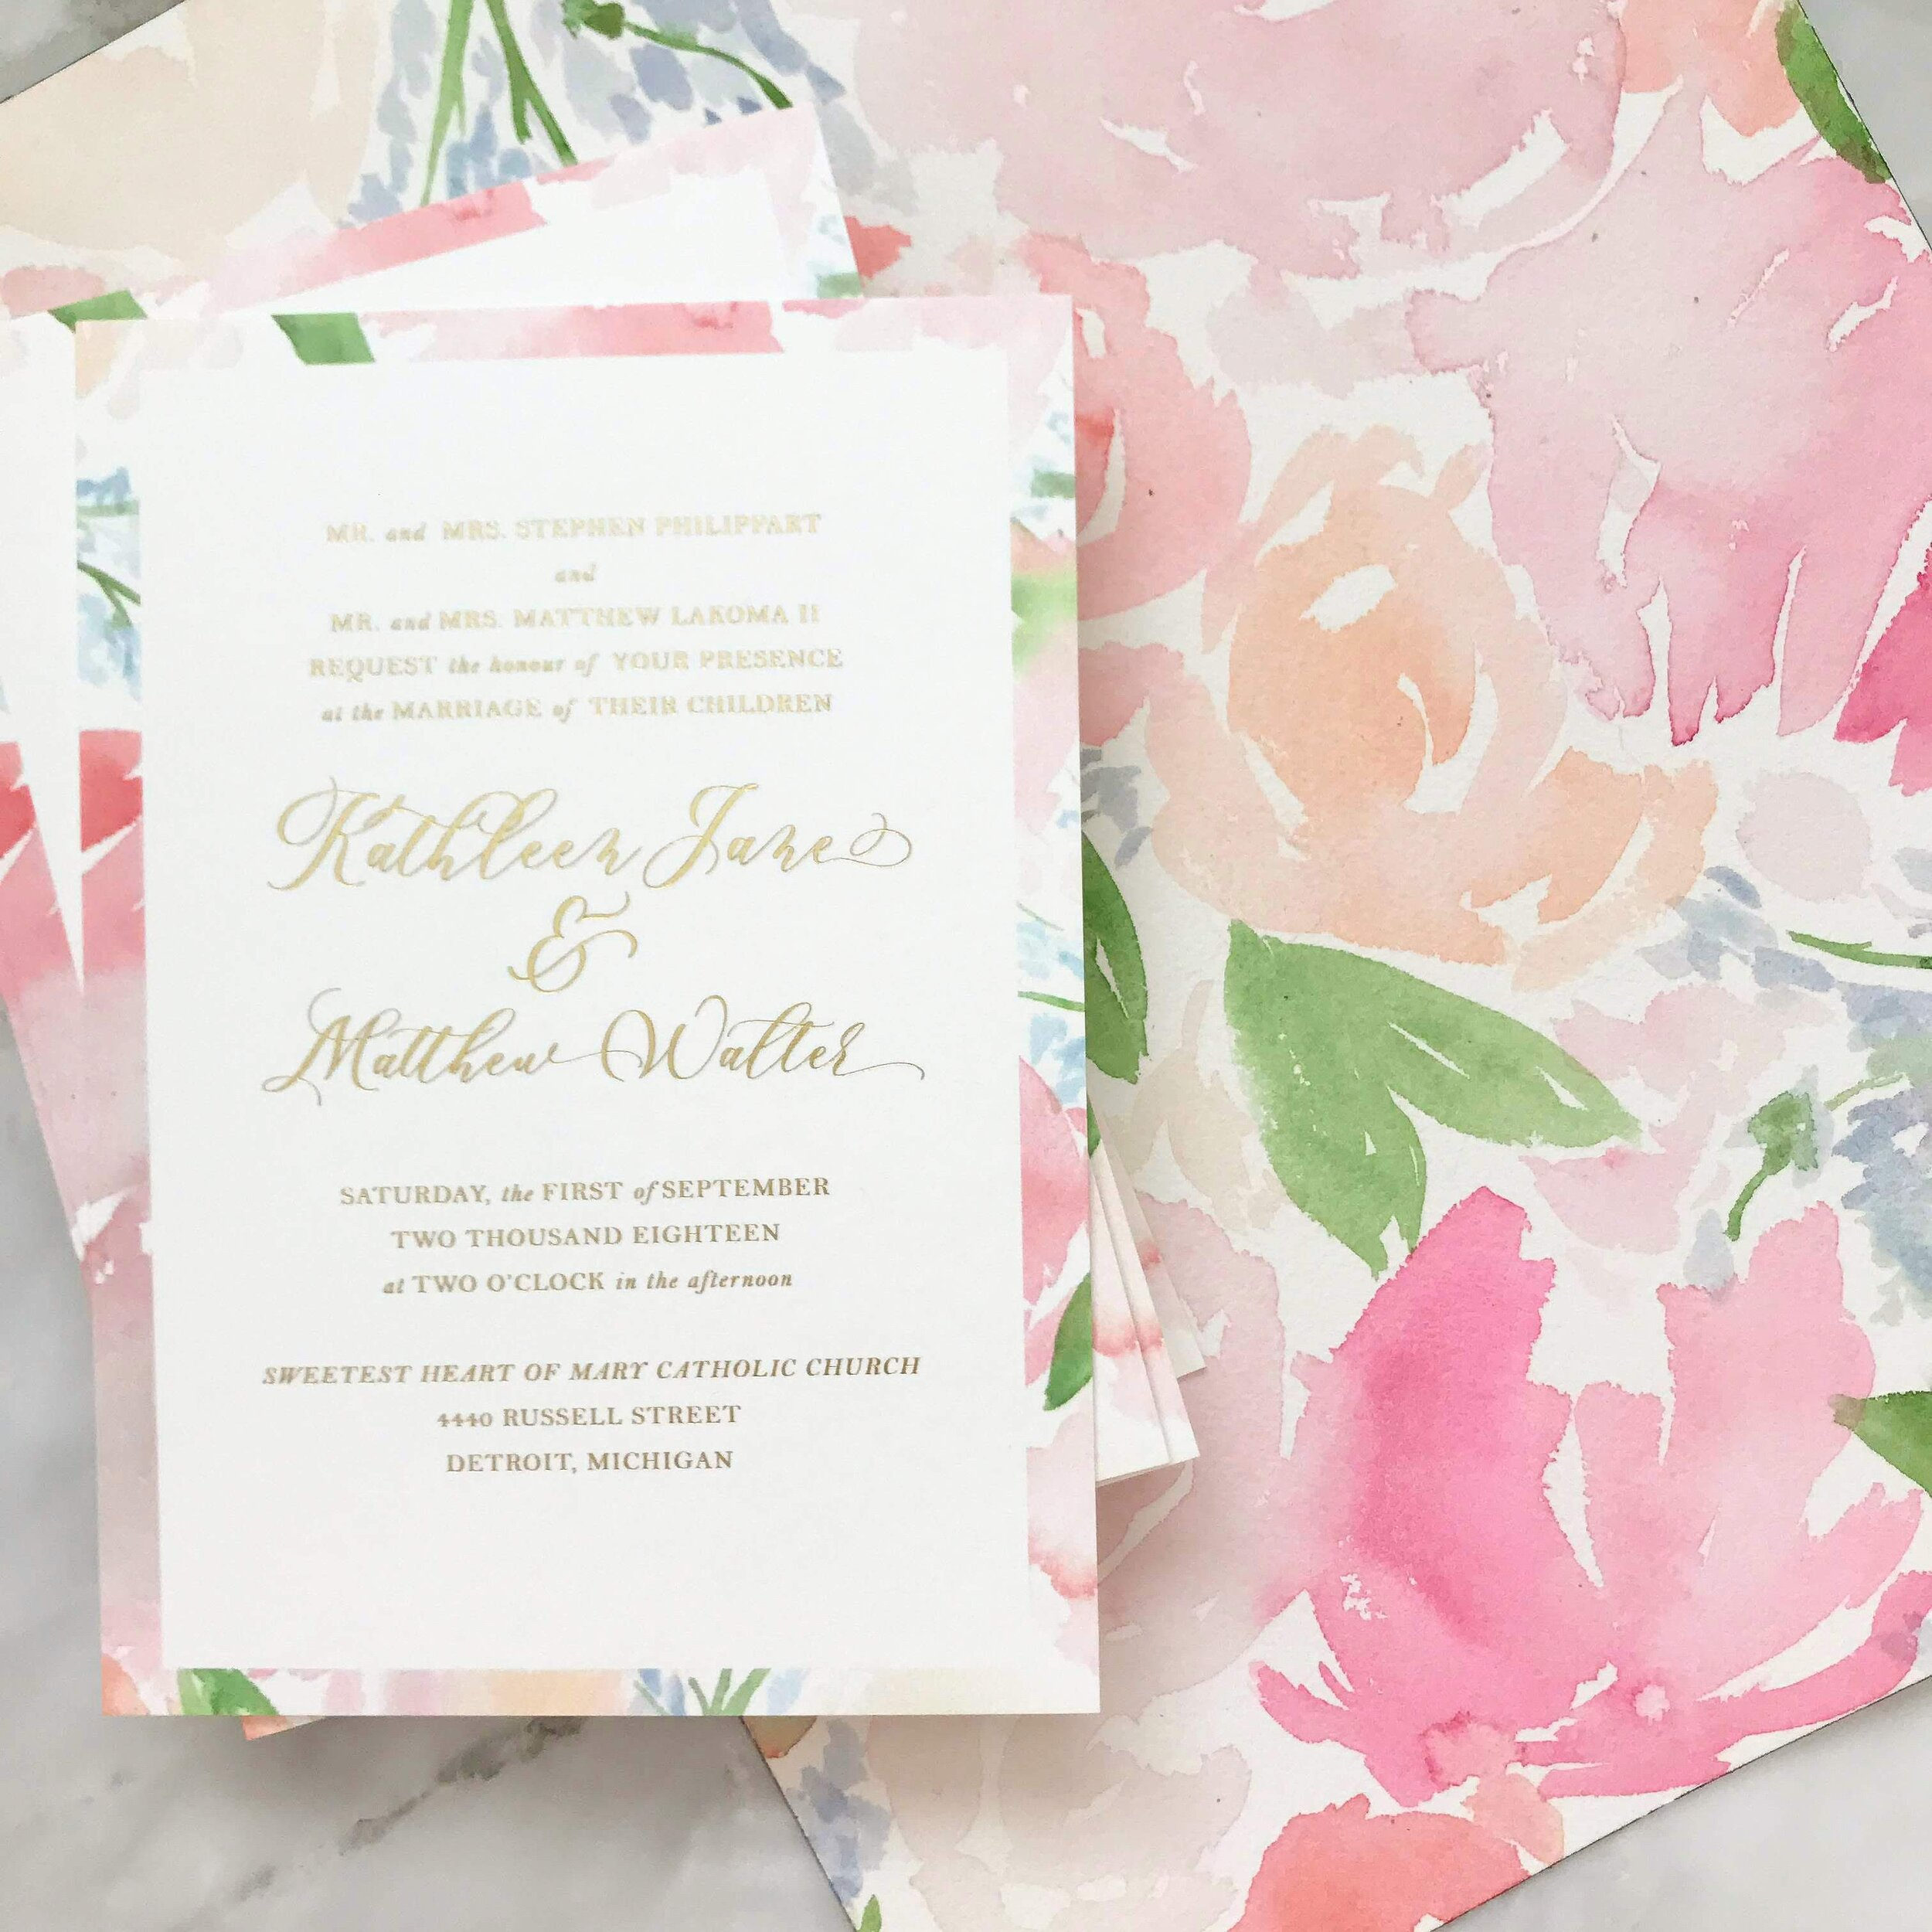 Gold Foil and Watercolor Florals Wedding Invitations